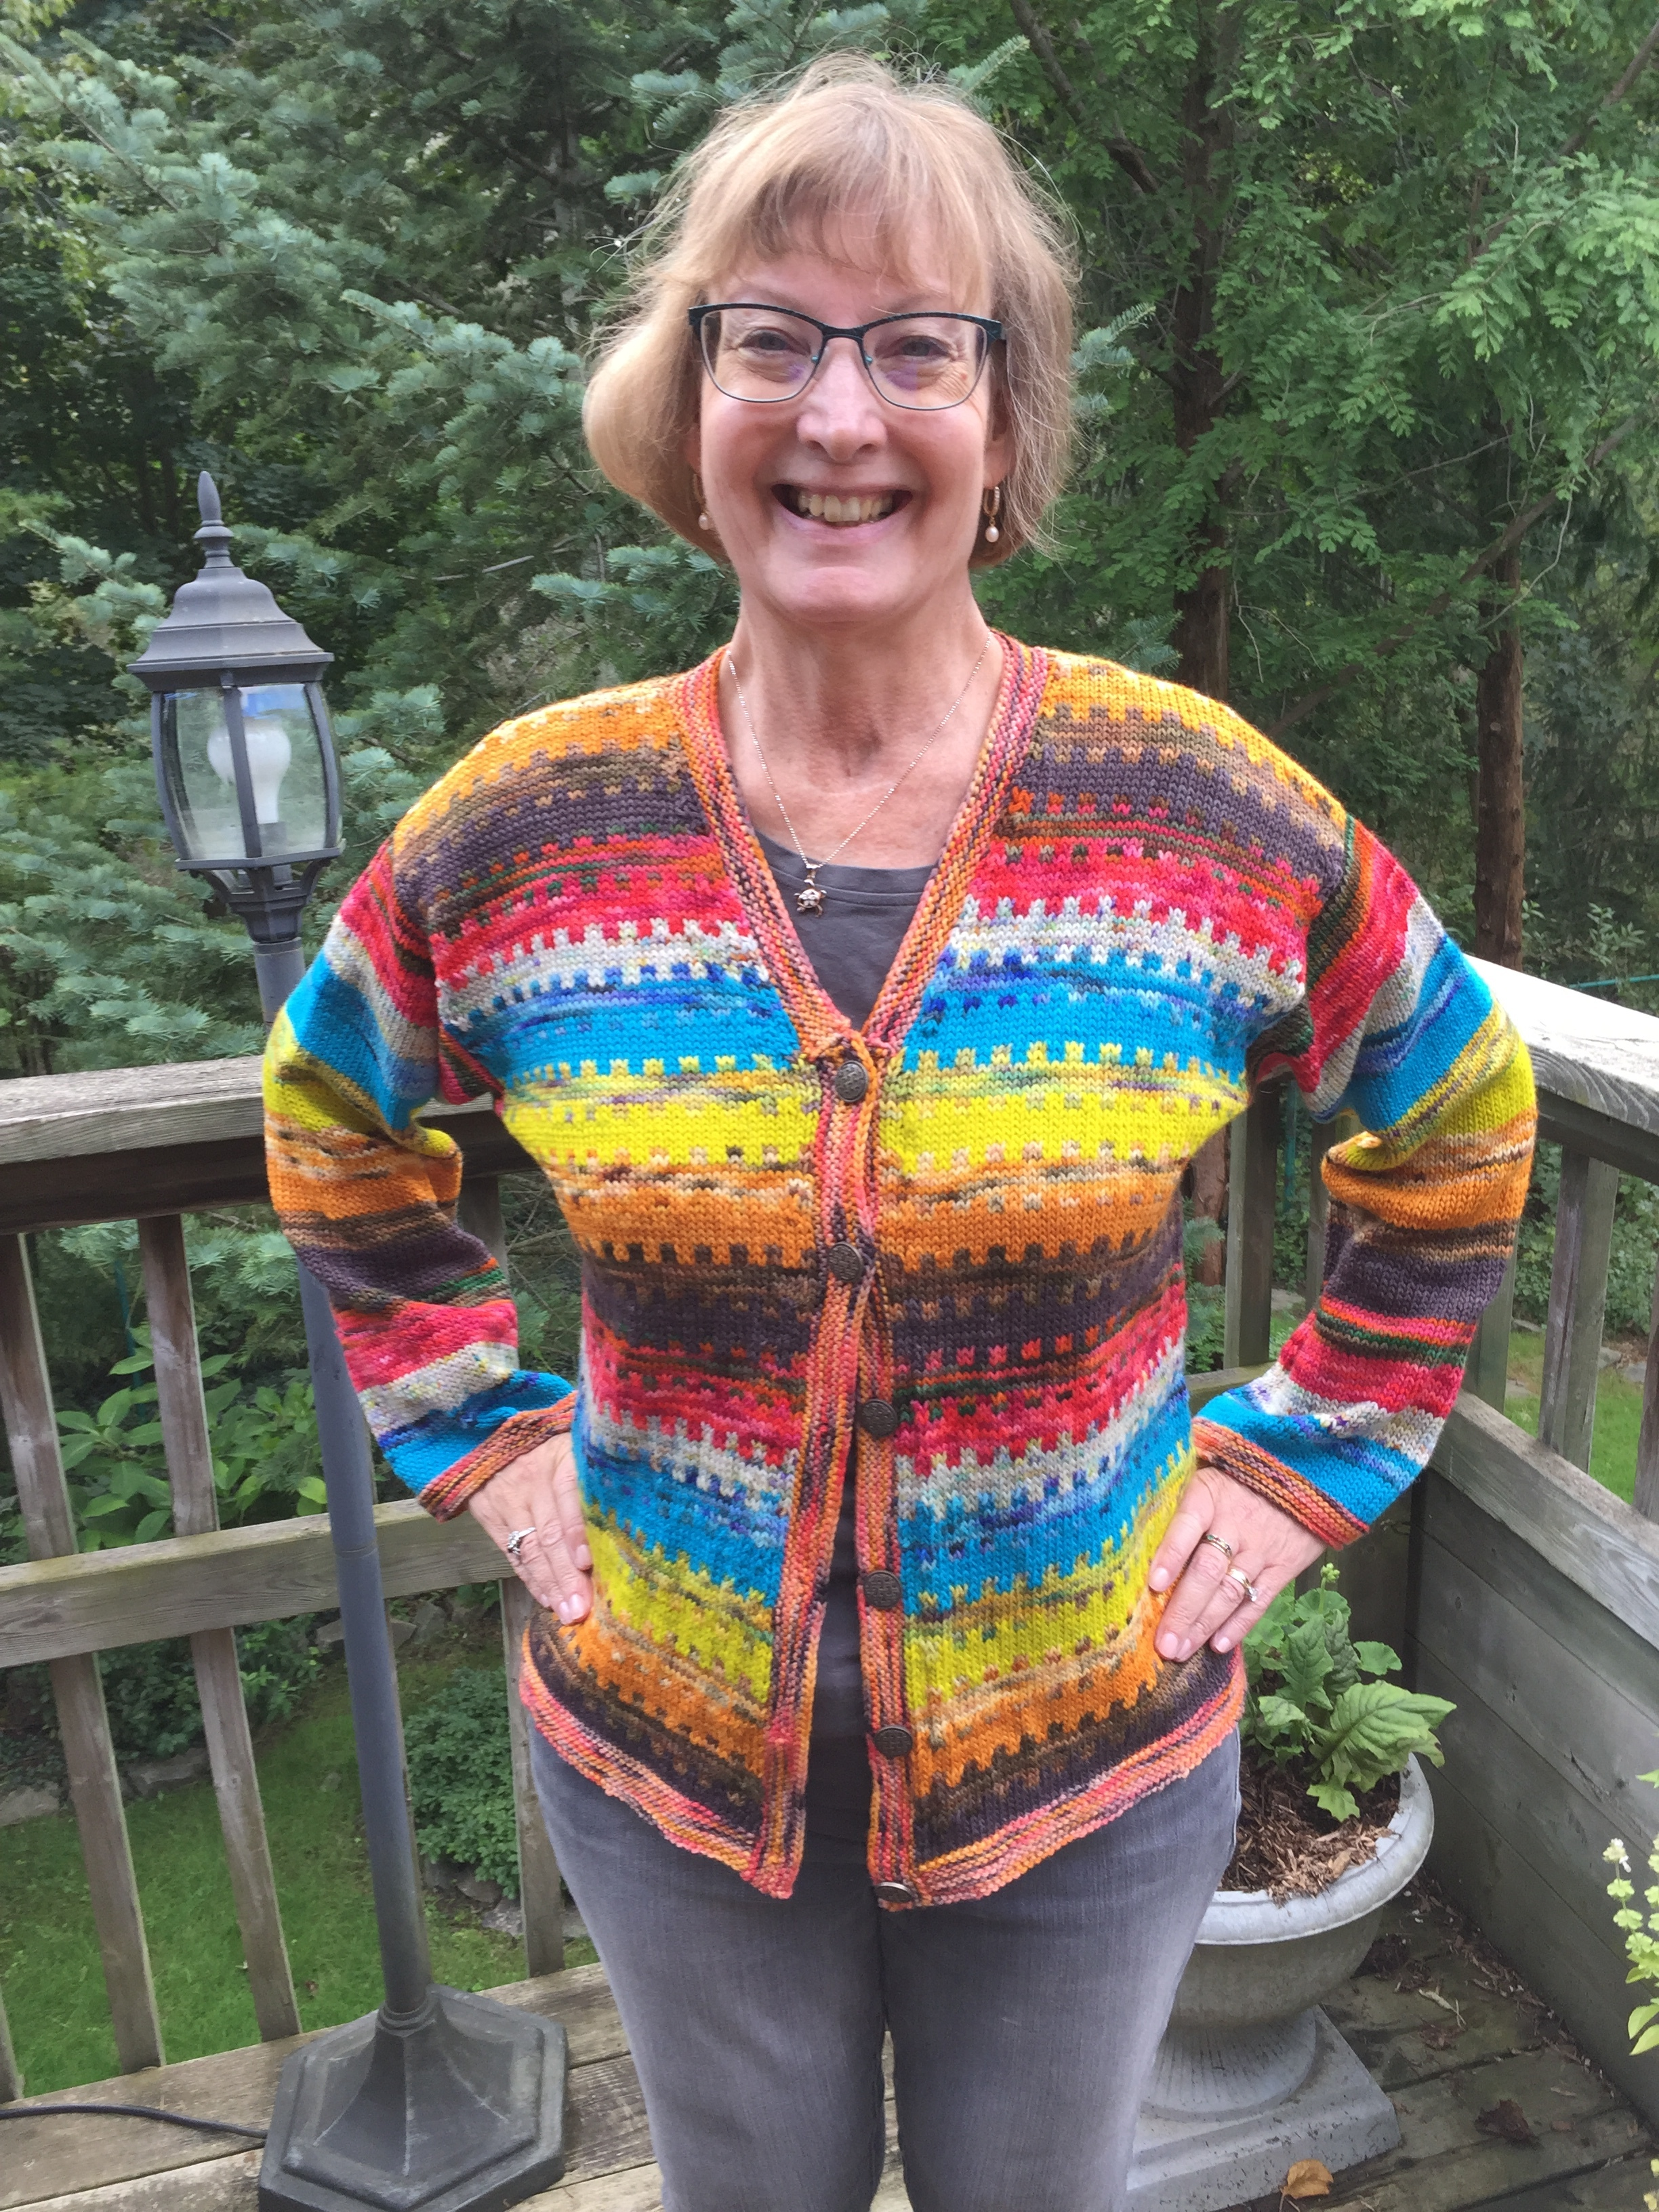 Janice - My cardigan that I did and my Welsh knitting friend wanted to knit also. I delivered Koigu Kersti to her in England.